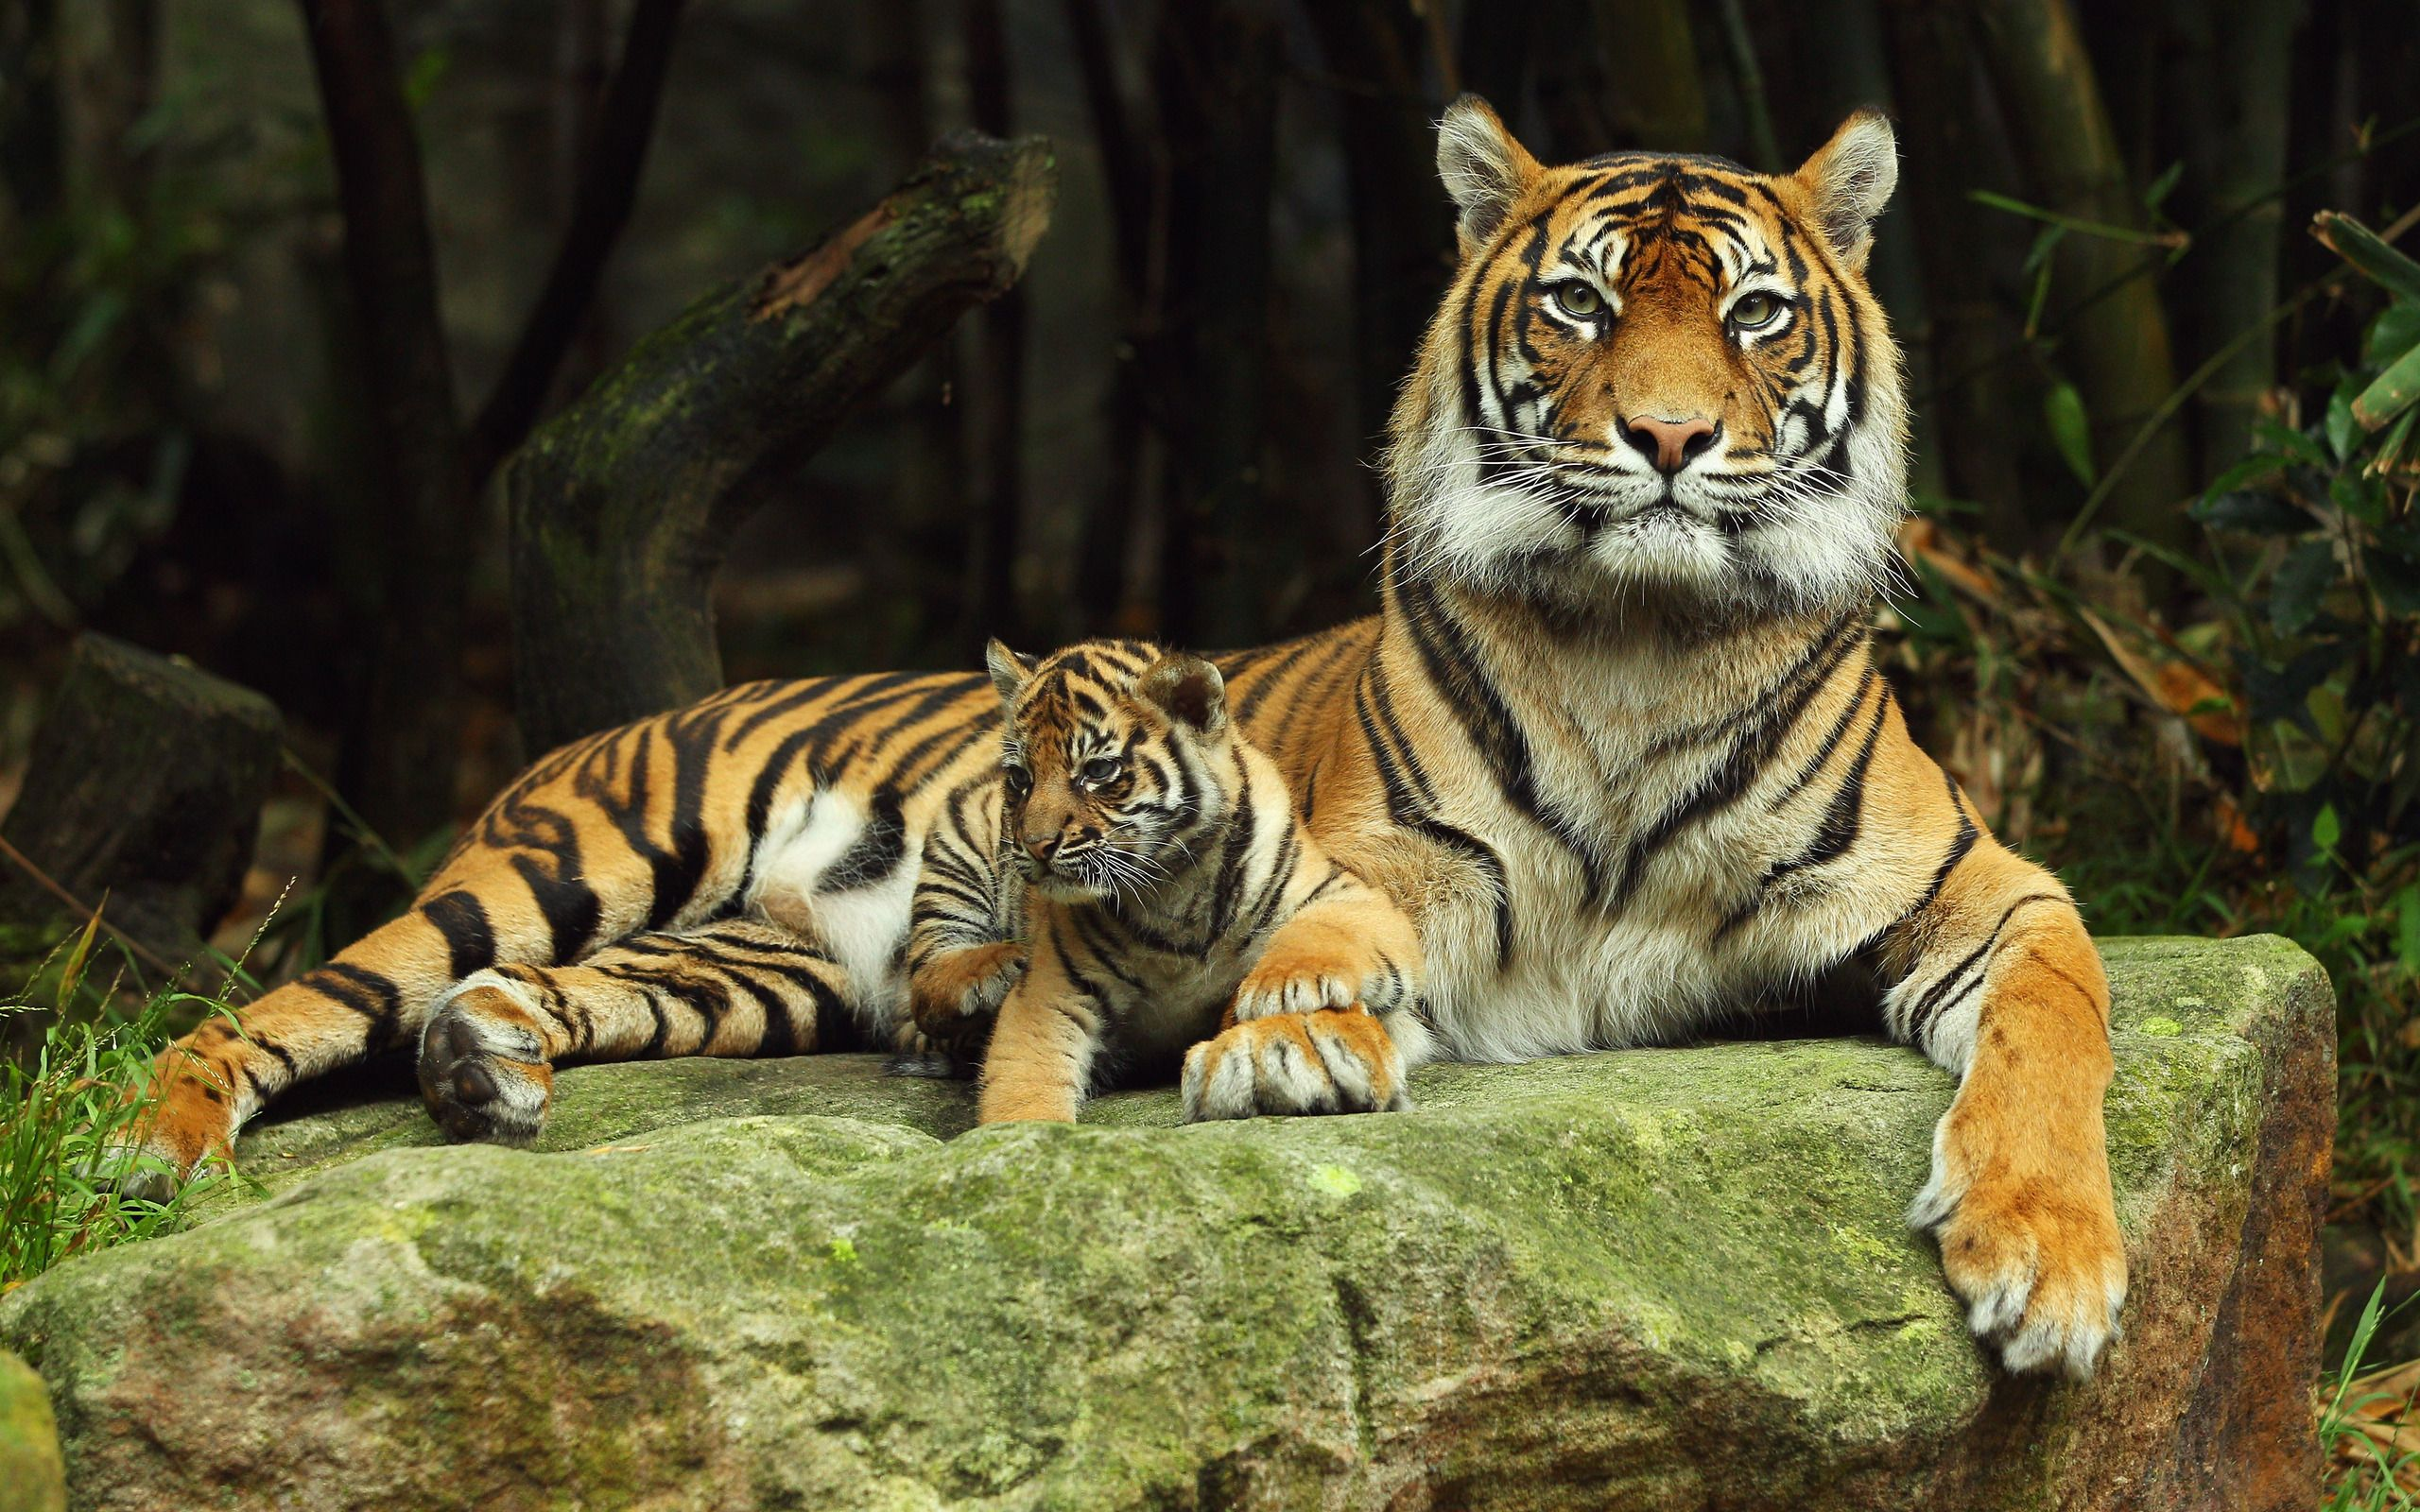 tiger image wallpapers group × tiger wallpapers hd | hd wallpapers